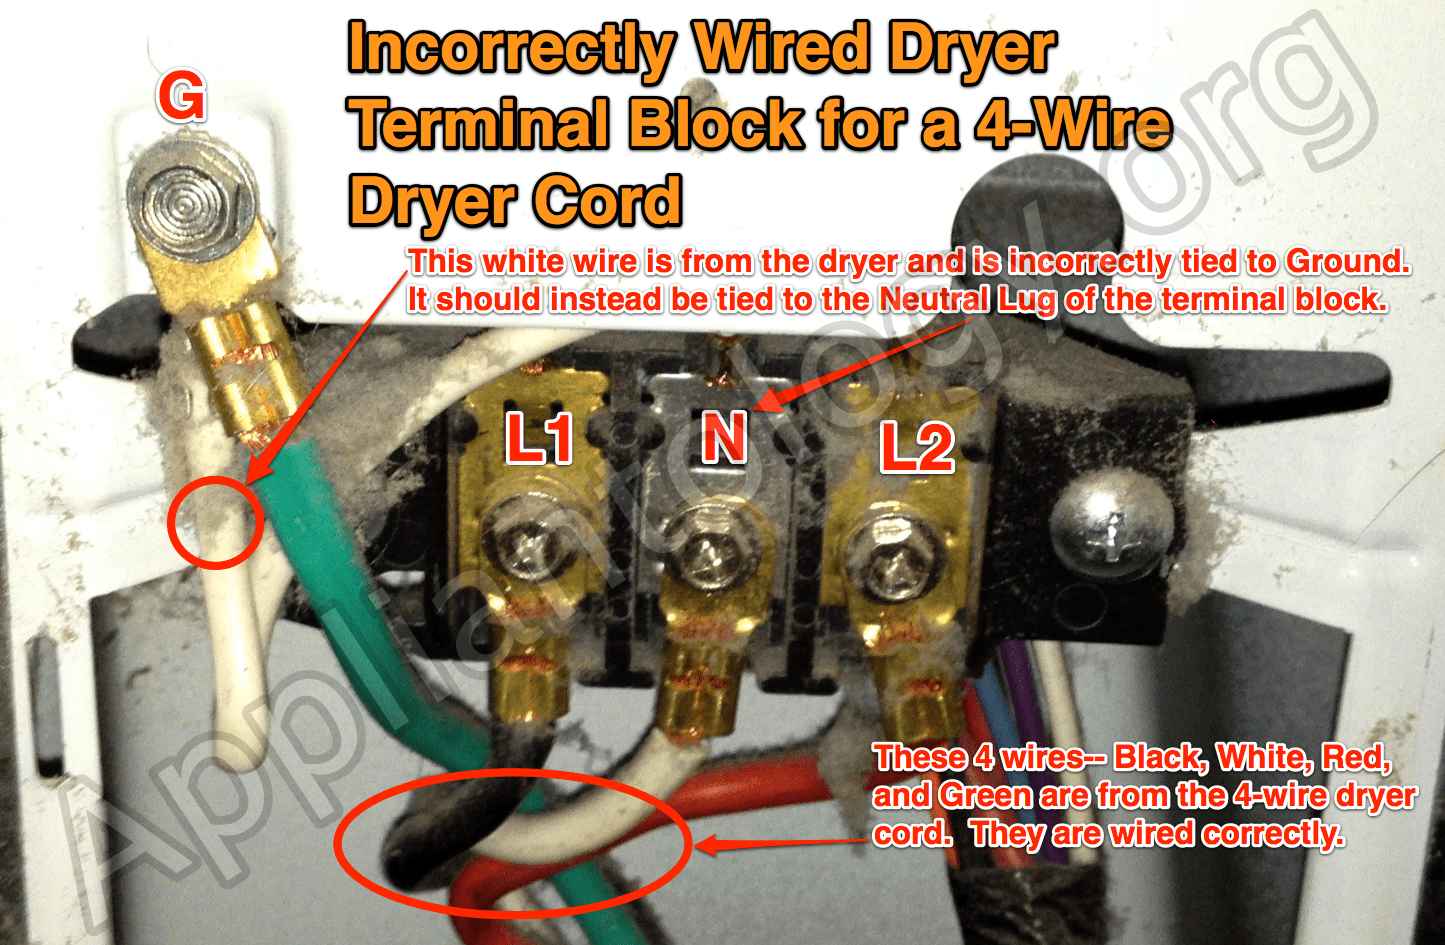 3 prong plug wiring diagram jeep cherokee 1996 incorrectly wired dryer terminal block for a 4 wire cord - the appliantology gallery ...